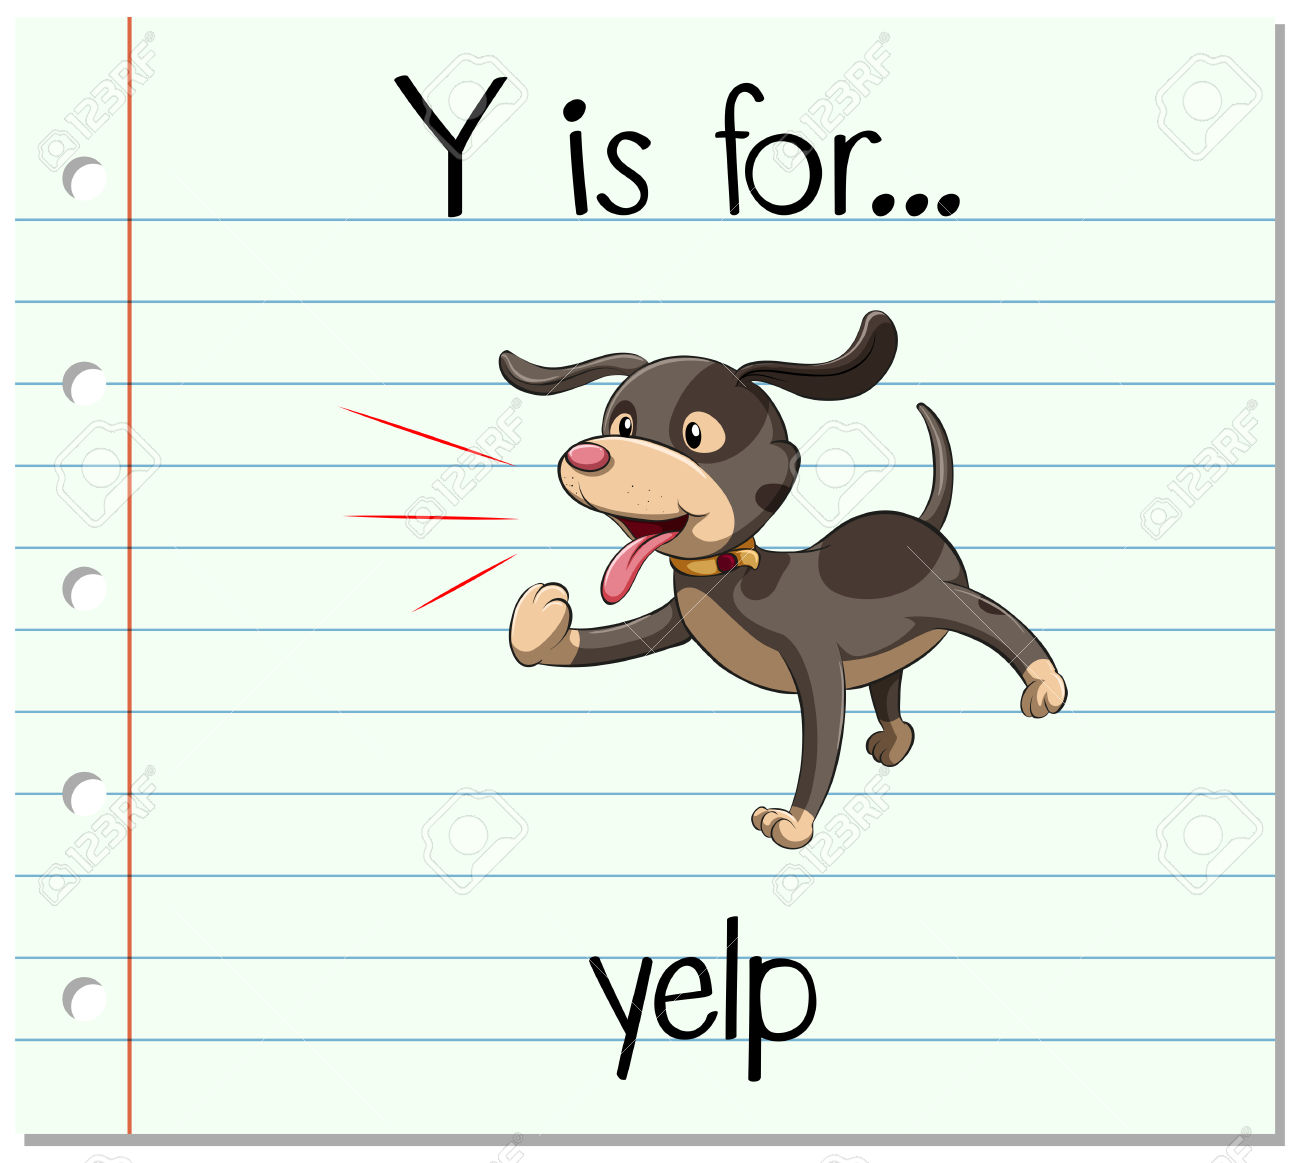 Dog yelp clipart graphic free download Dog yelp clipart - ClipartFest graphic free download